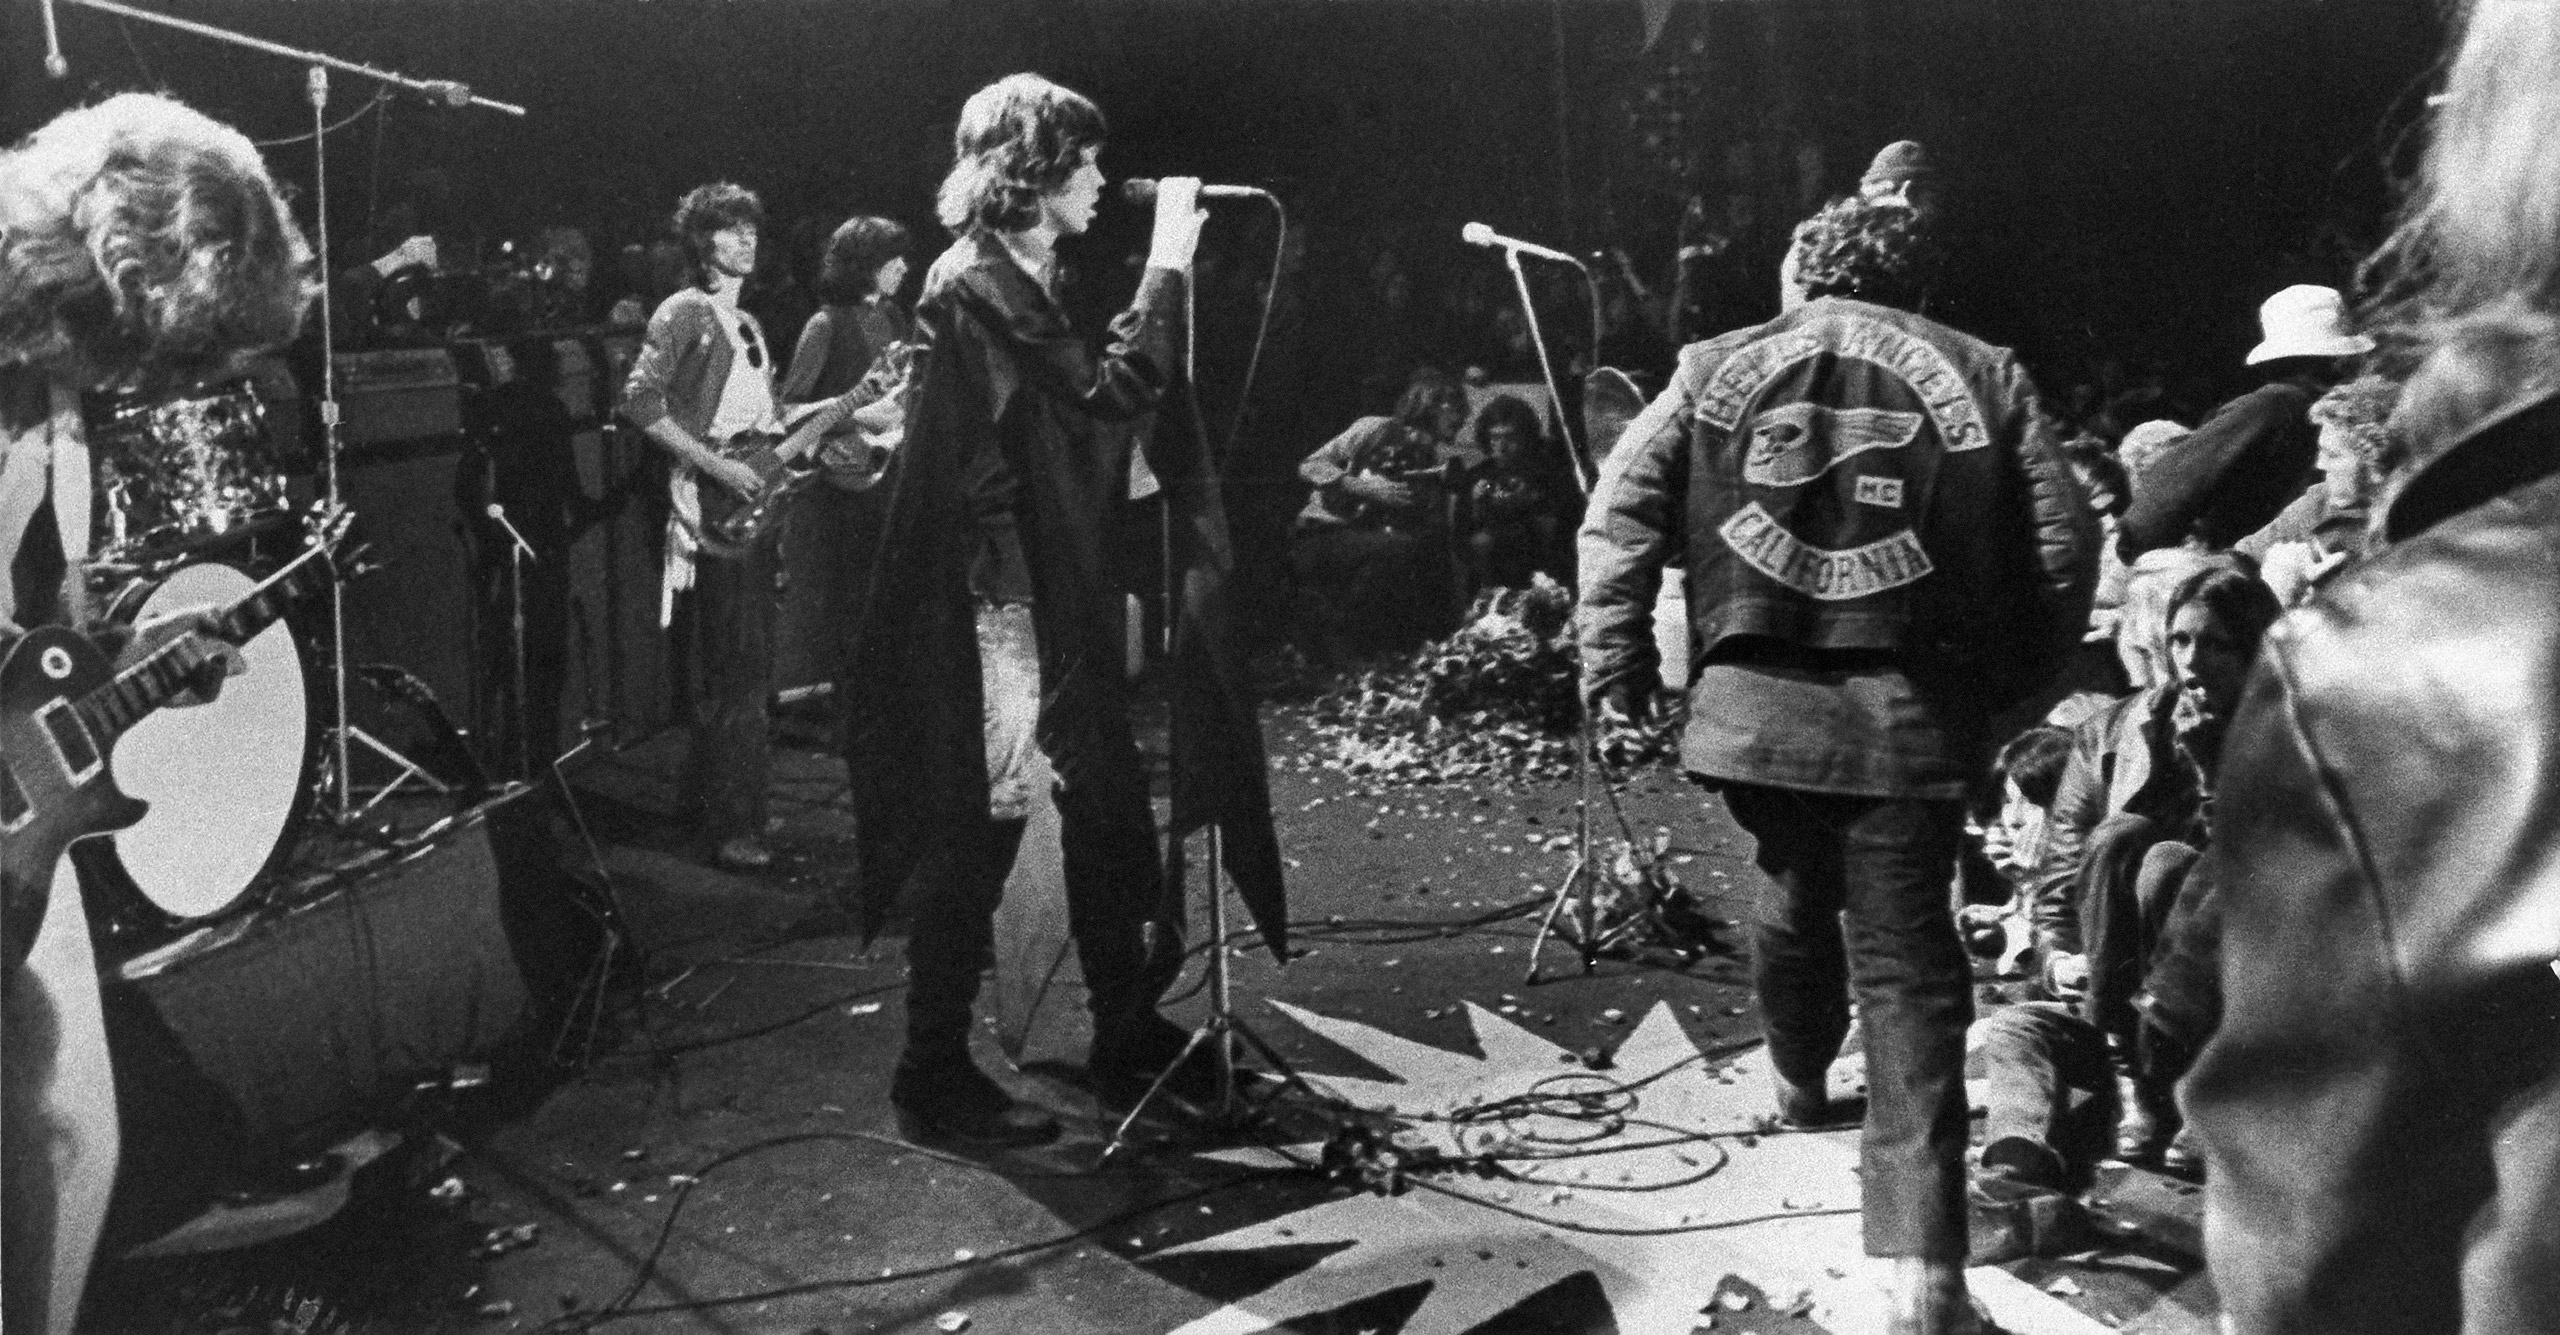 Mick Jagger sings at the Altamont Rock Festival at Livermore, Calif. on Dec. 6, 1969 while Hells Angels the cross stage during a melee.